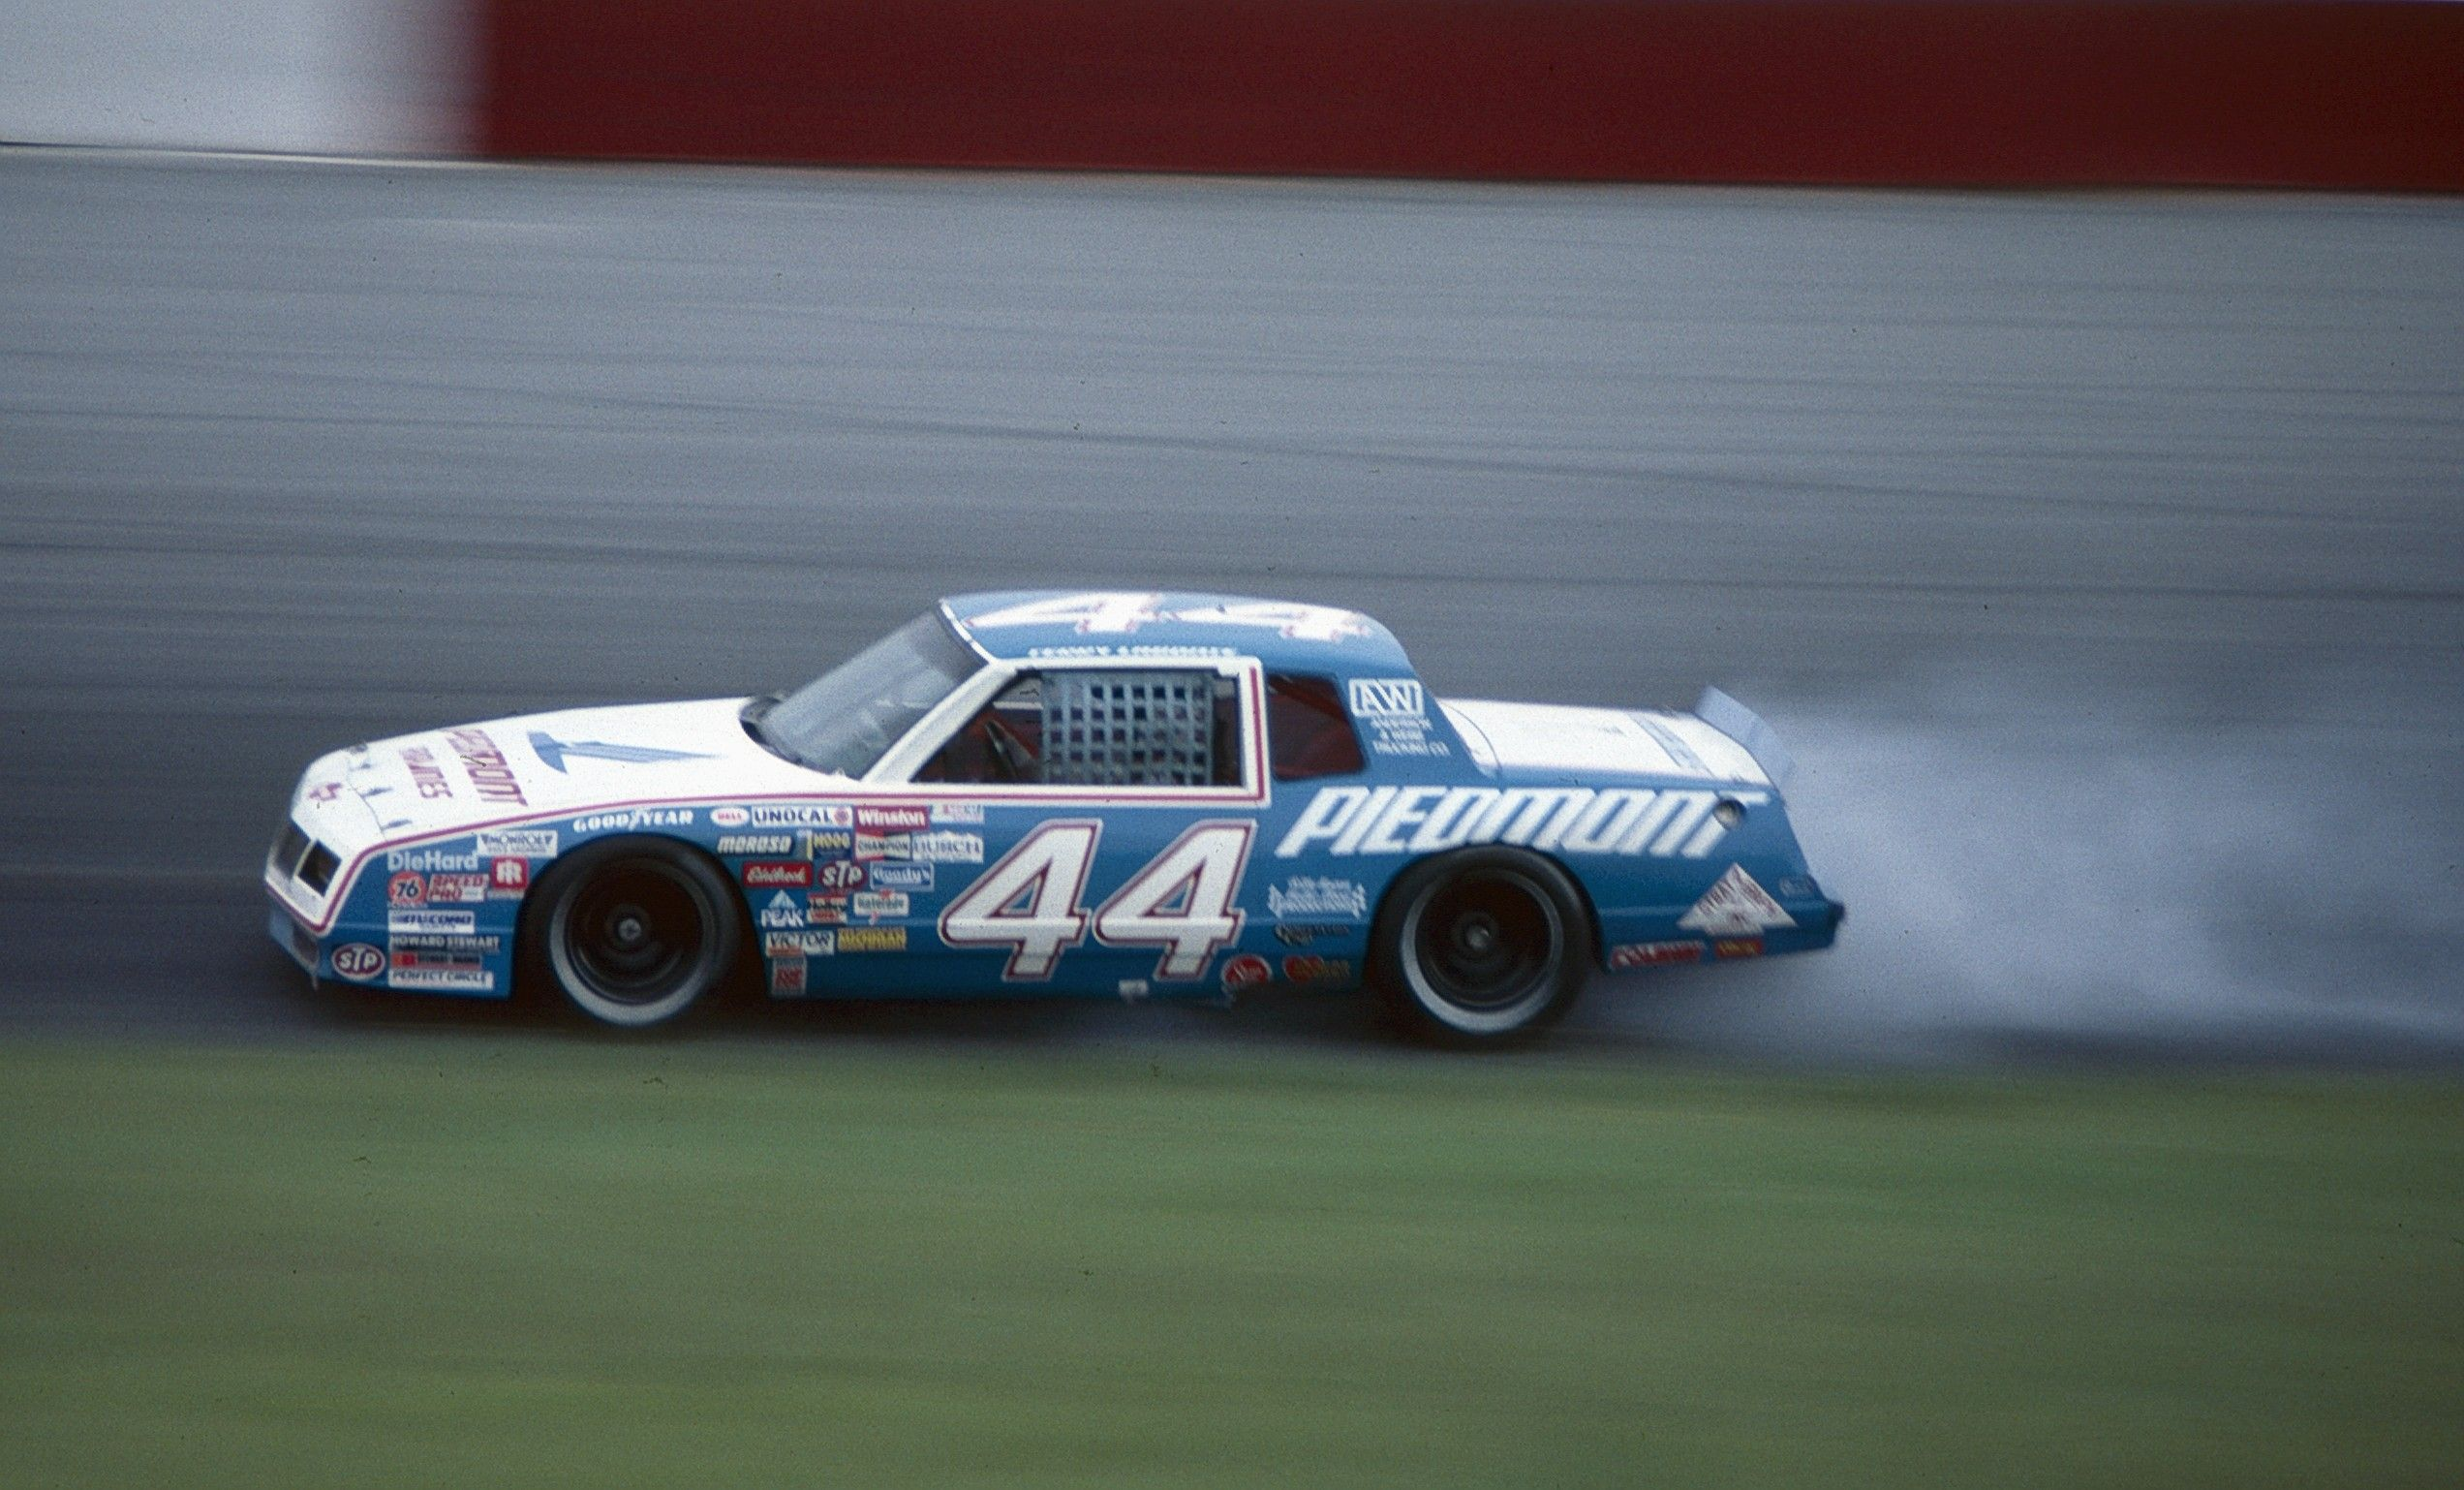 Terry Labonte1984 Piedmont Airlines Chevy